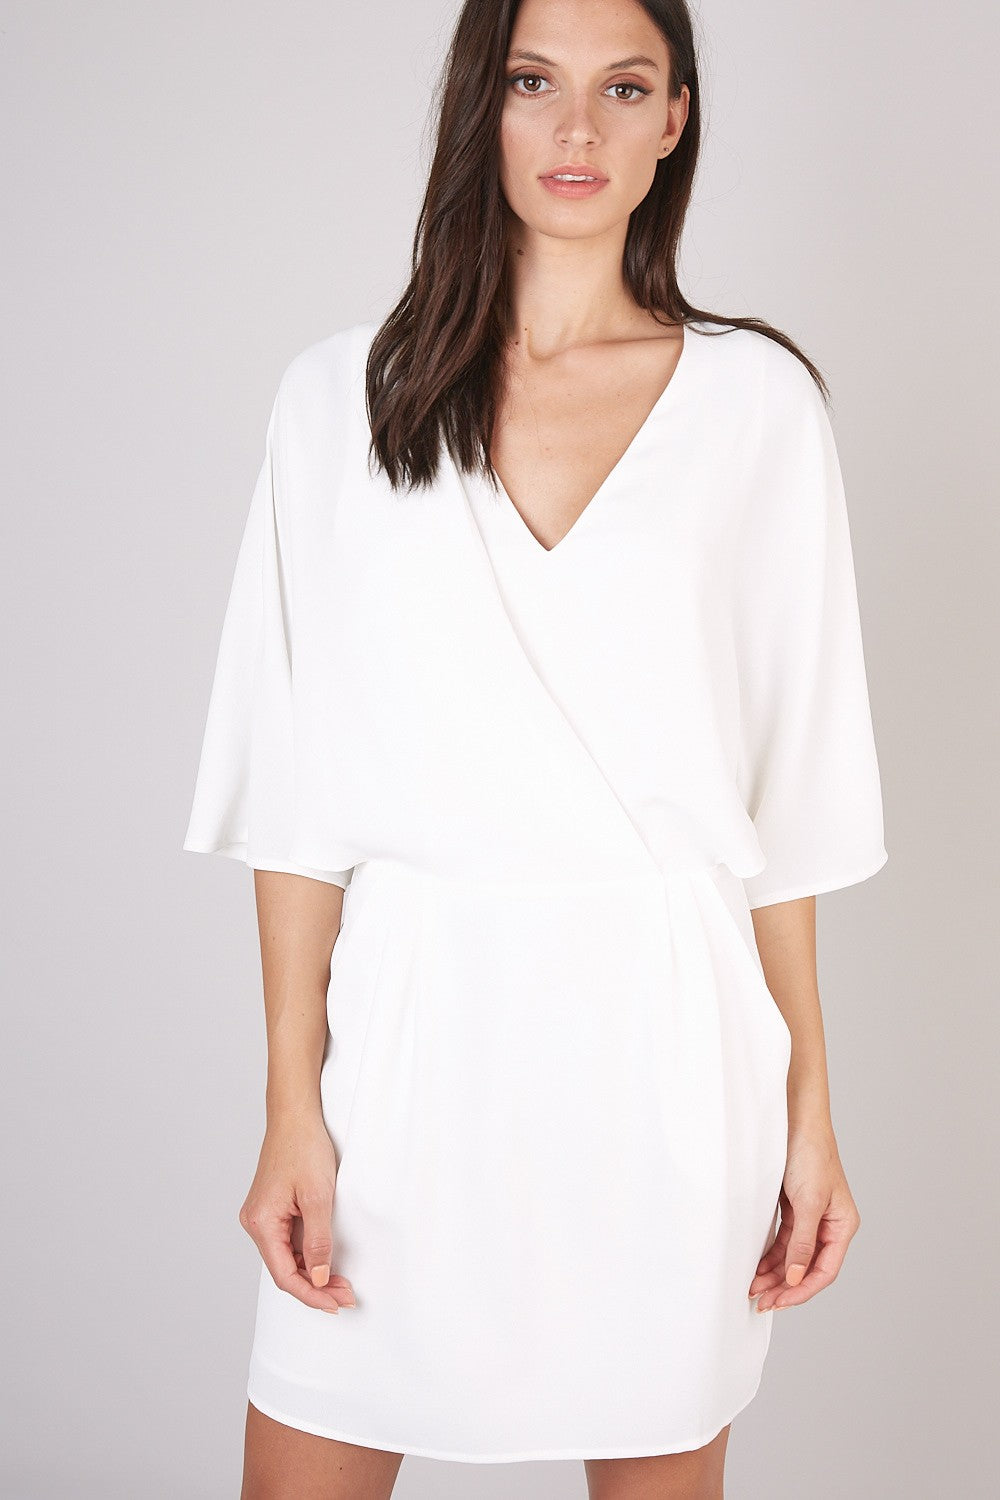 Do+Be White Women's Wrap Dress